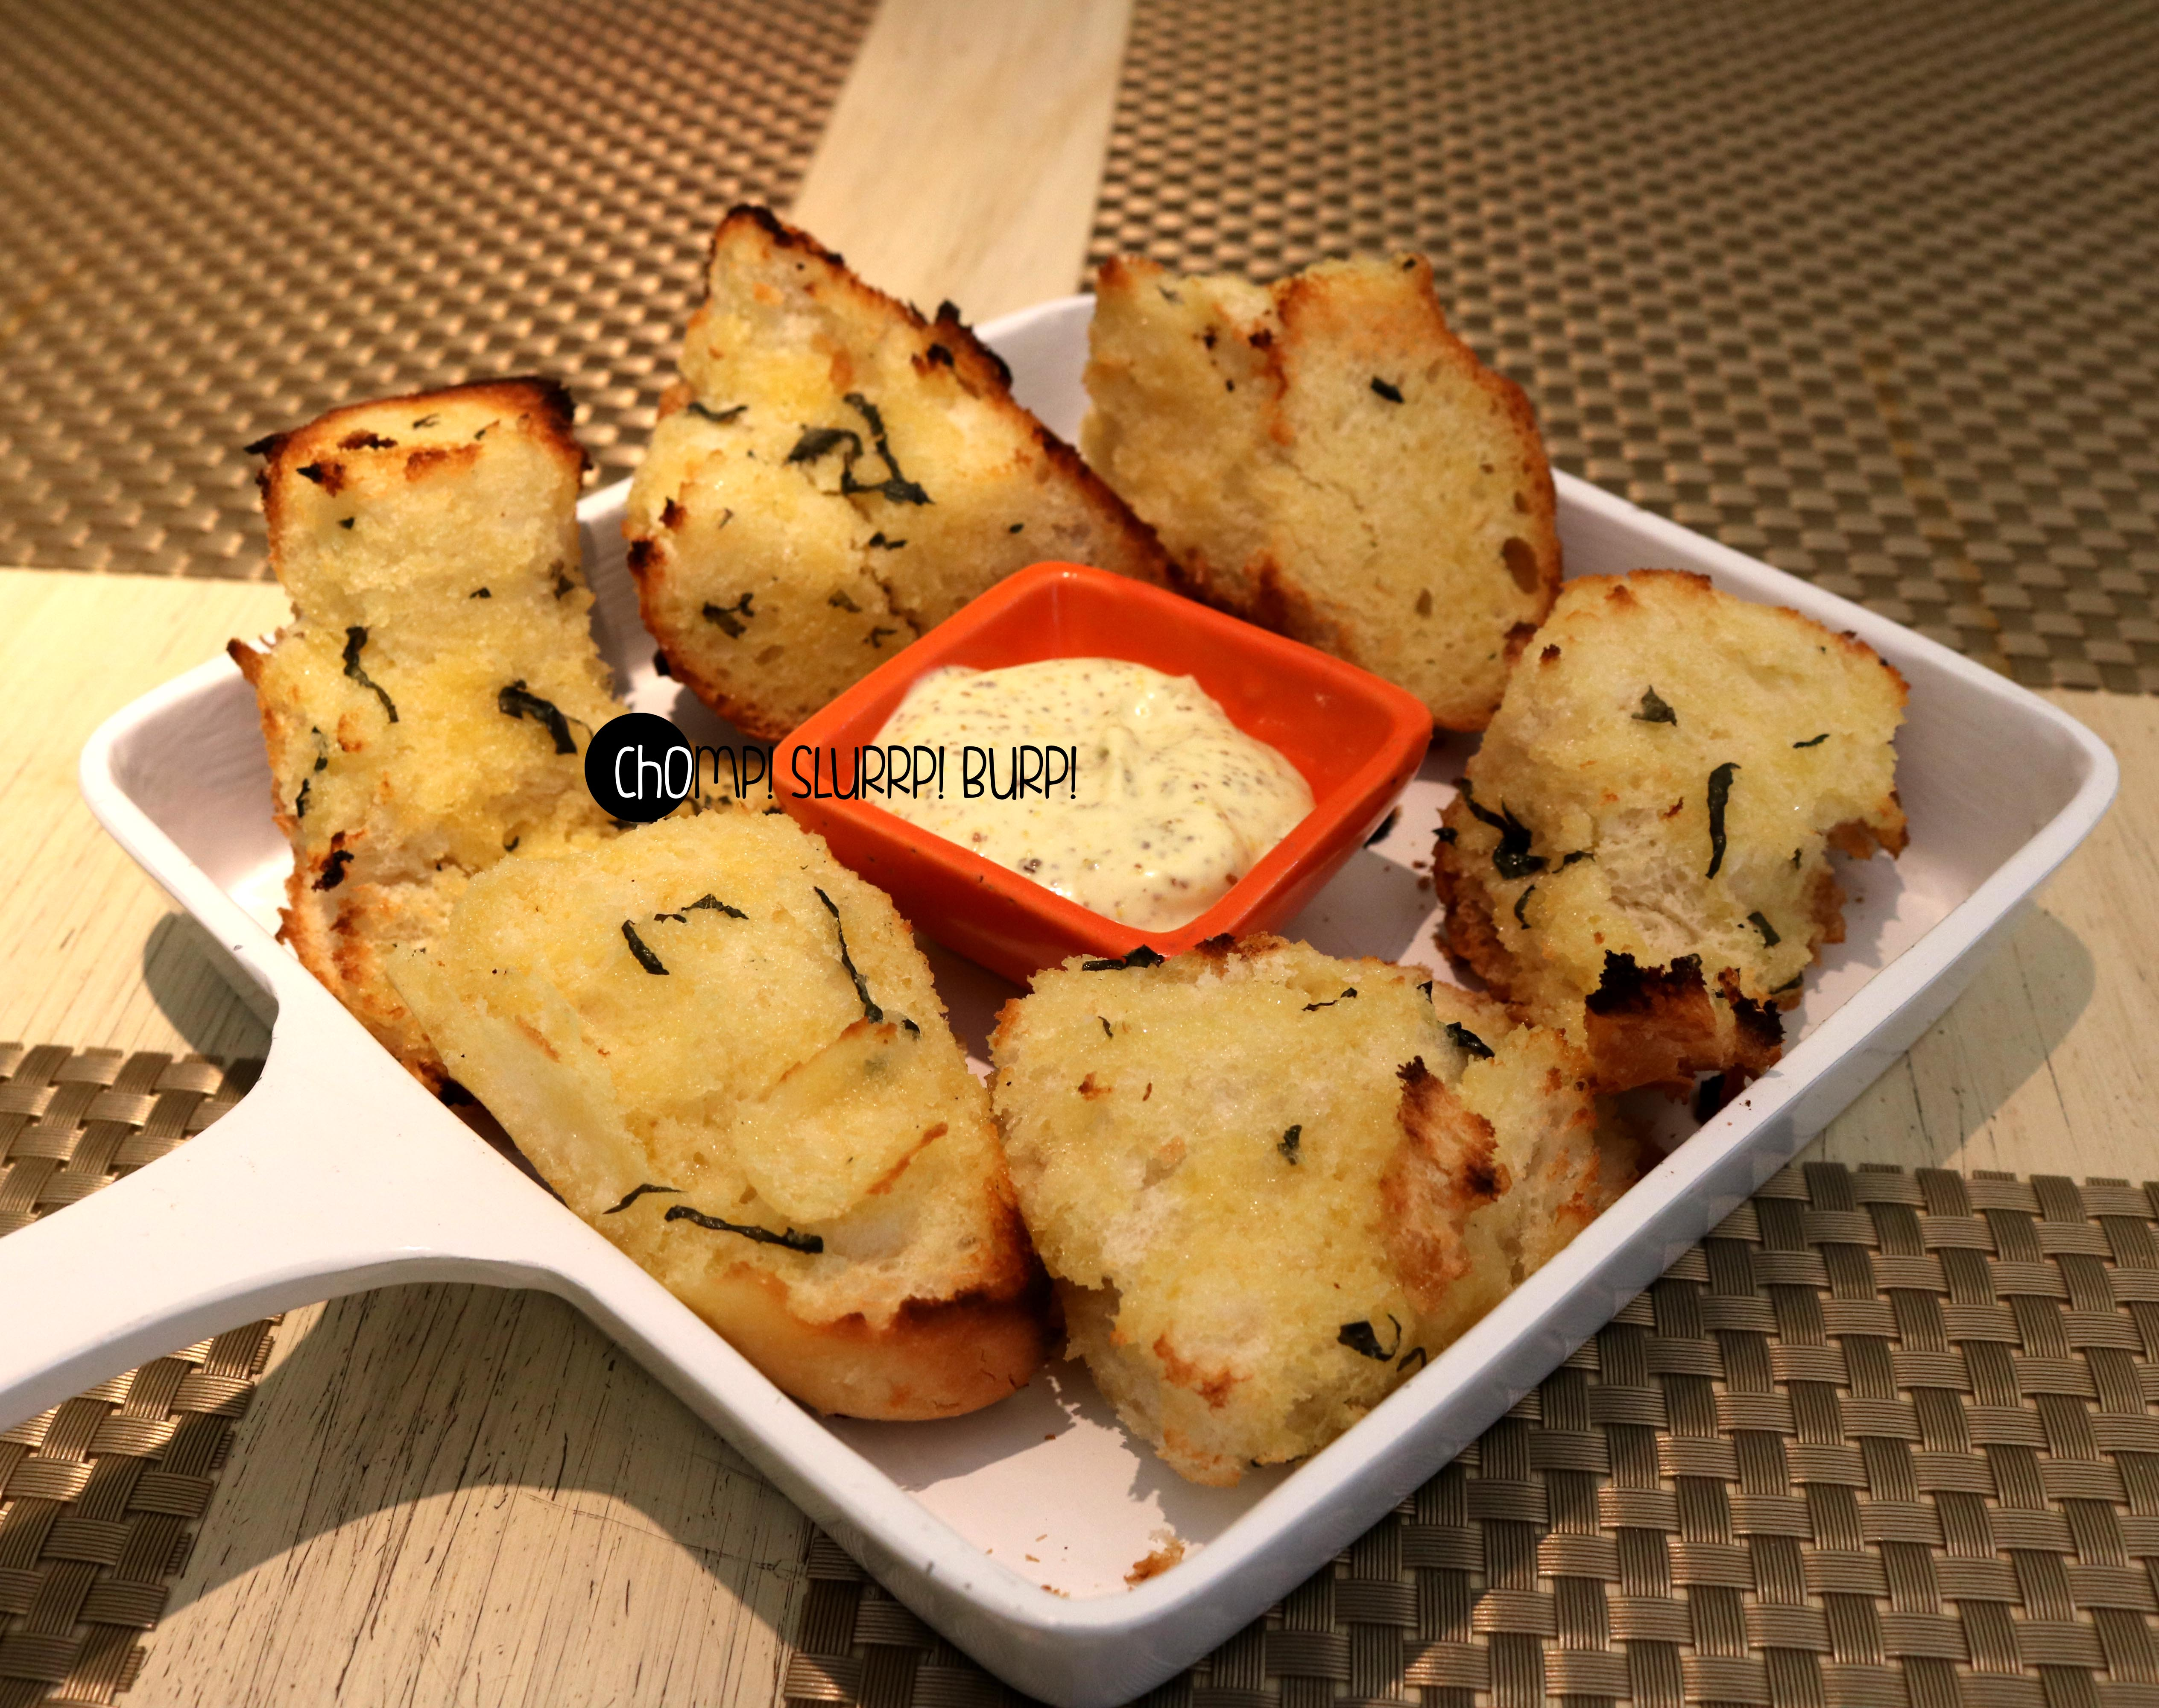 Garlic bread basket (2)